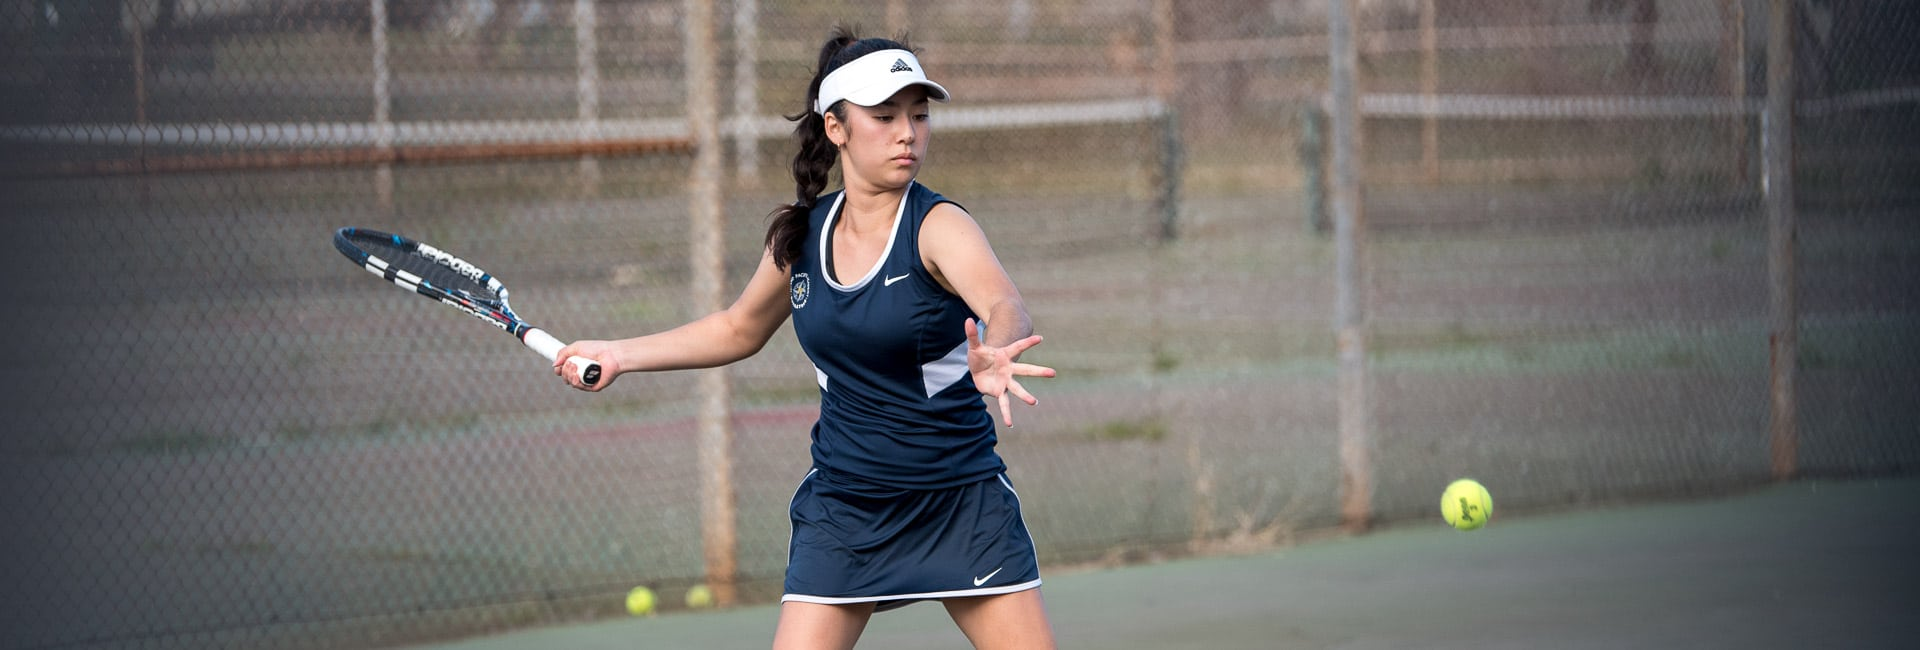 Varsity girls tennis player hitting forehand